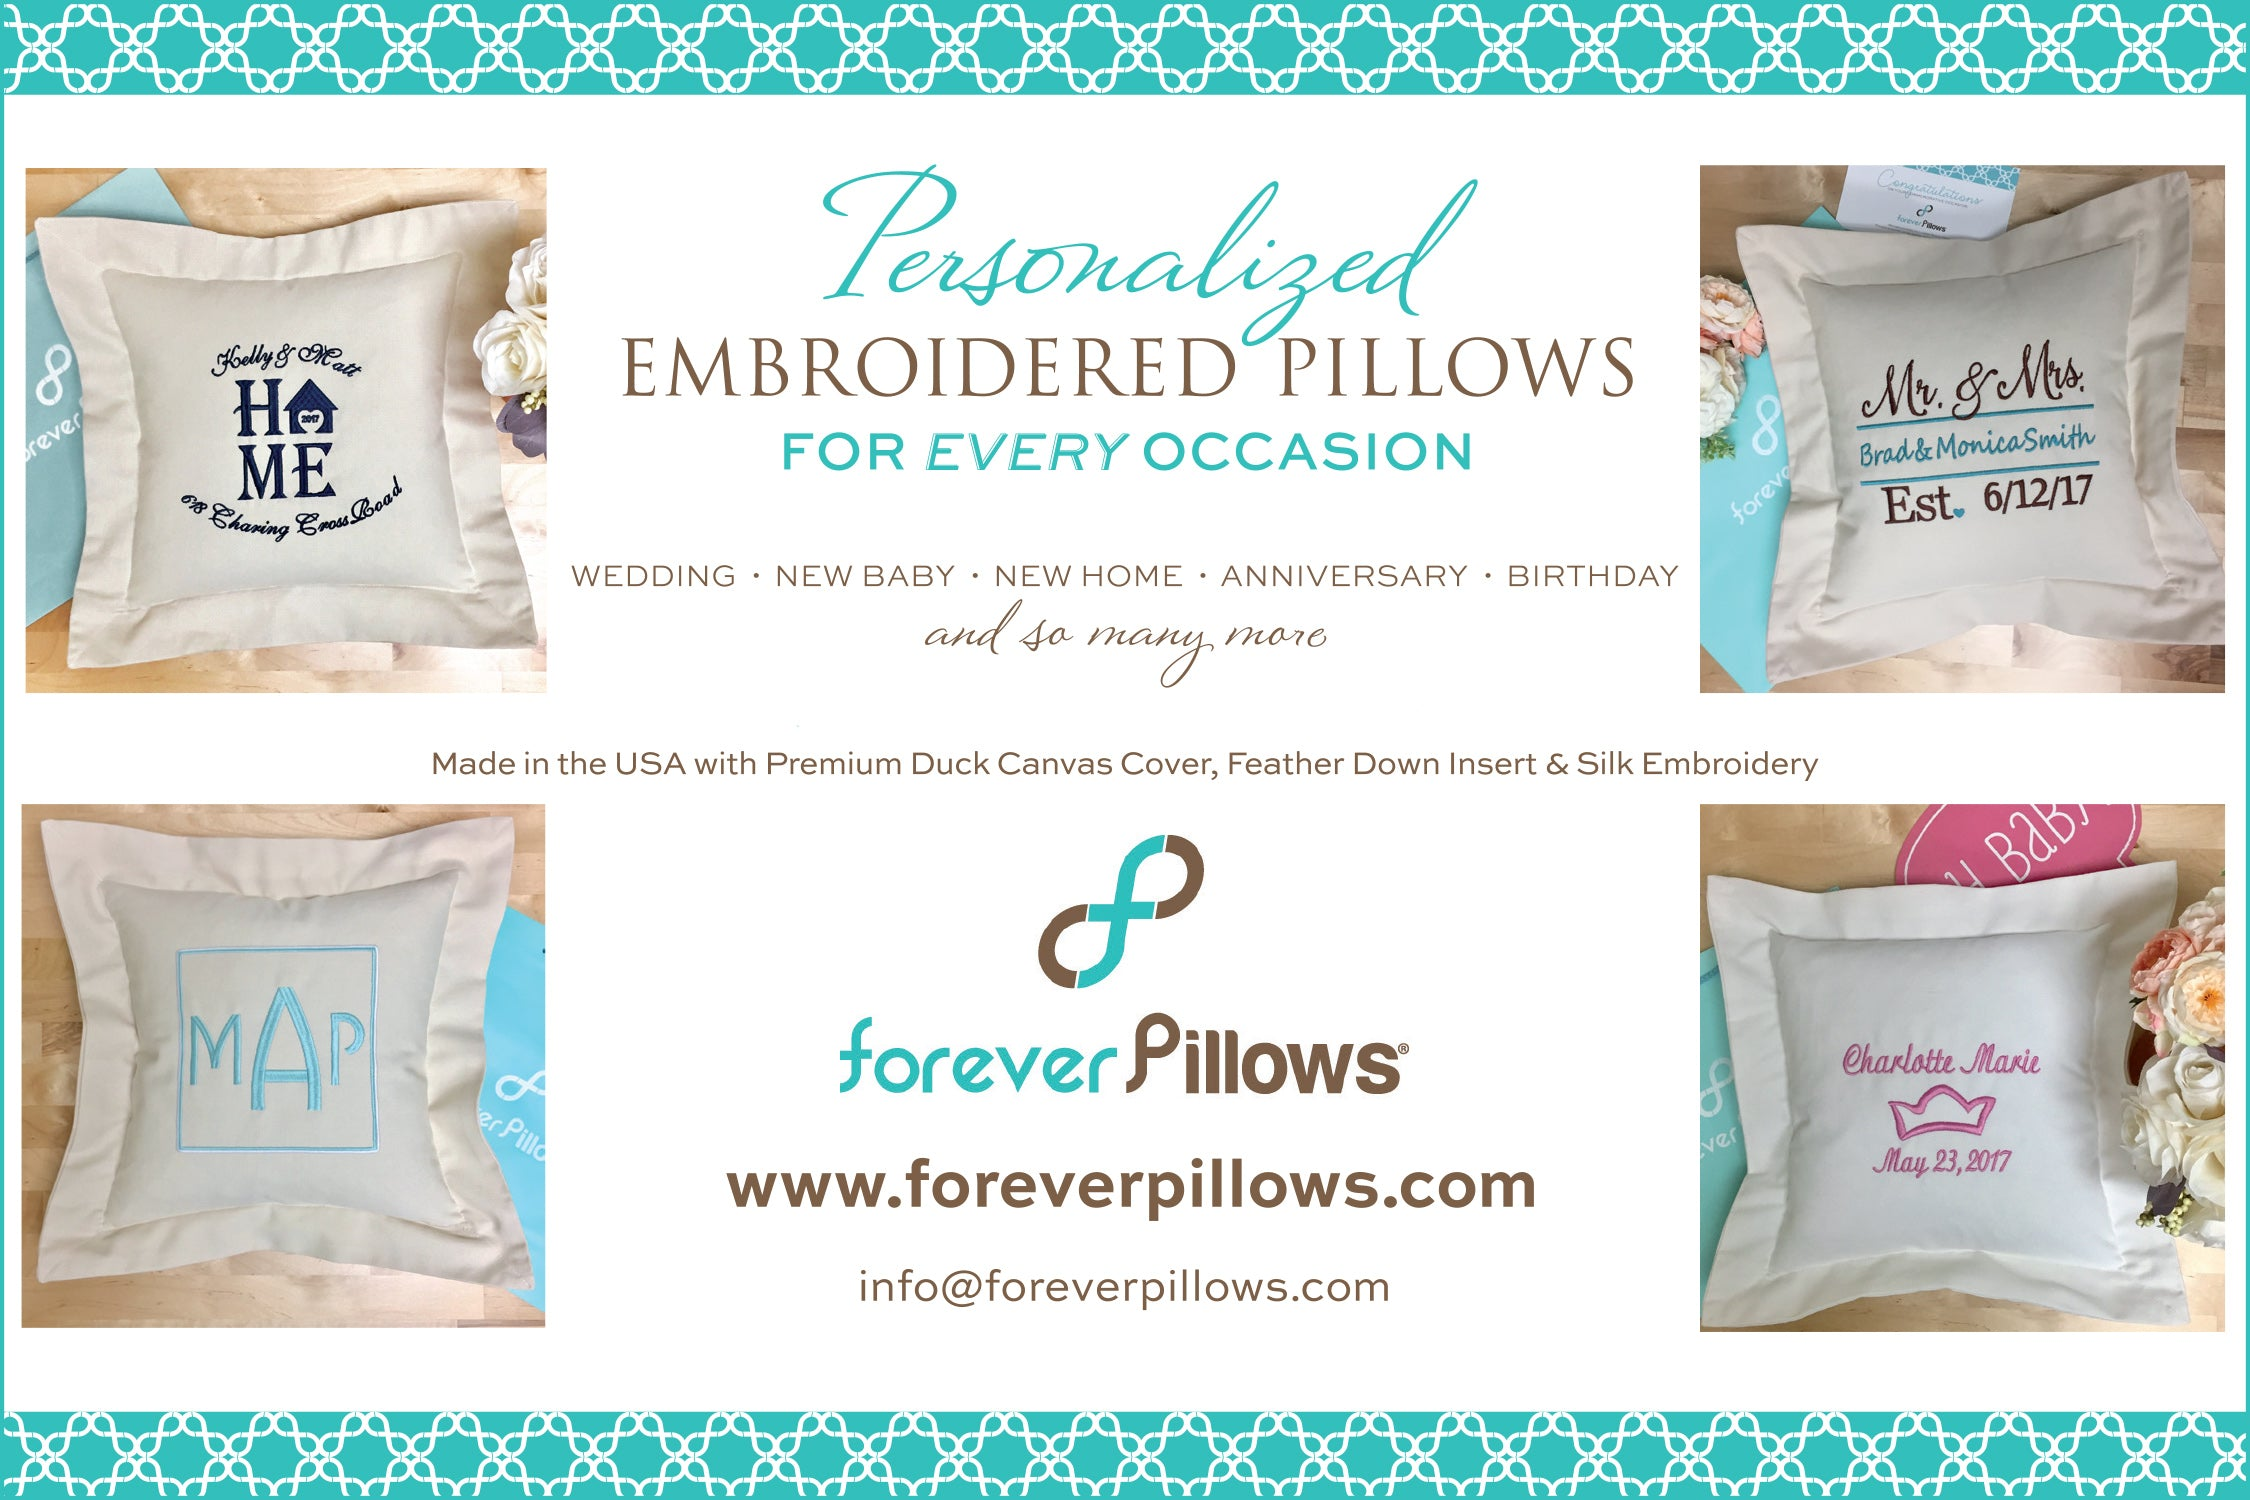 Personalized embroidered pillow gifts forever pillows personalized pillows forever pillows custom pillows negle Gallery